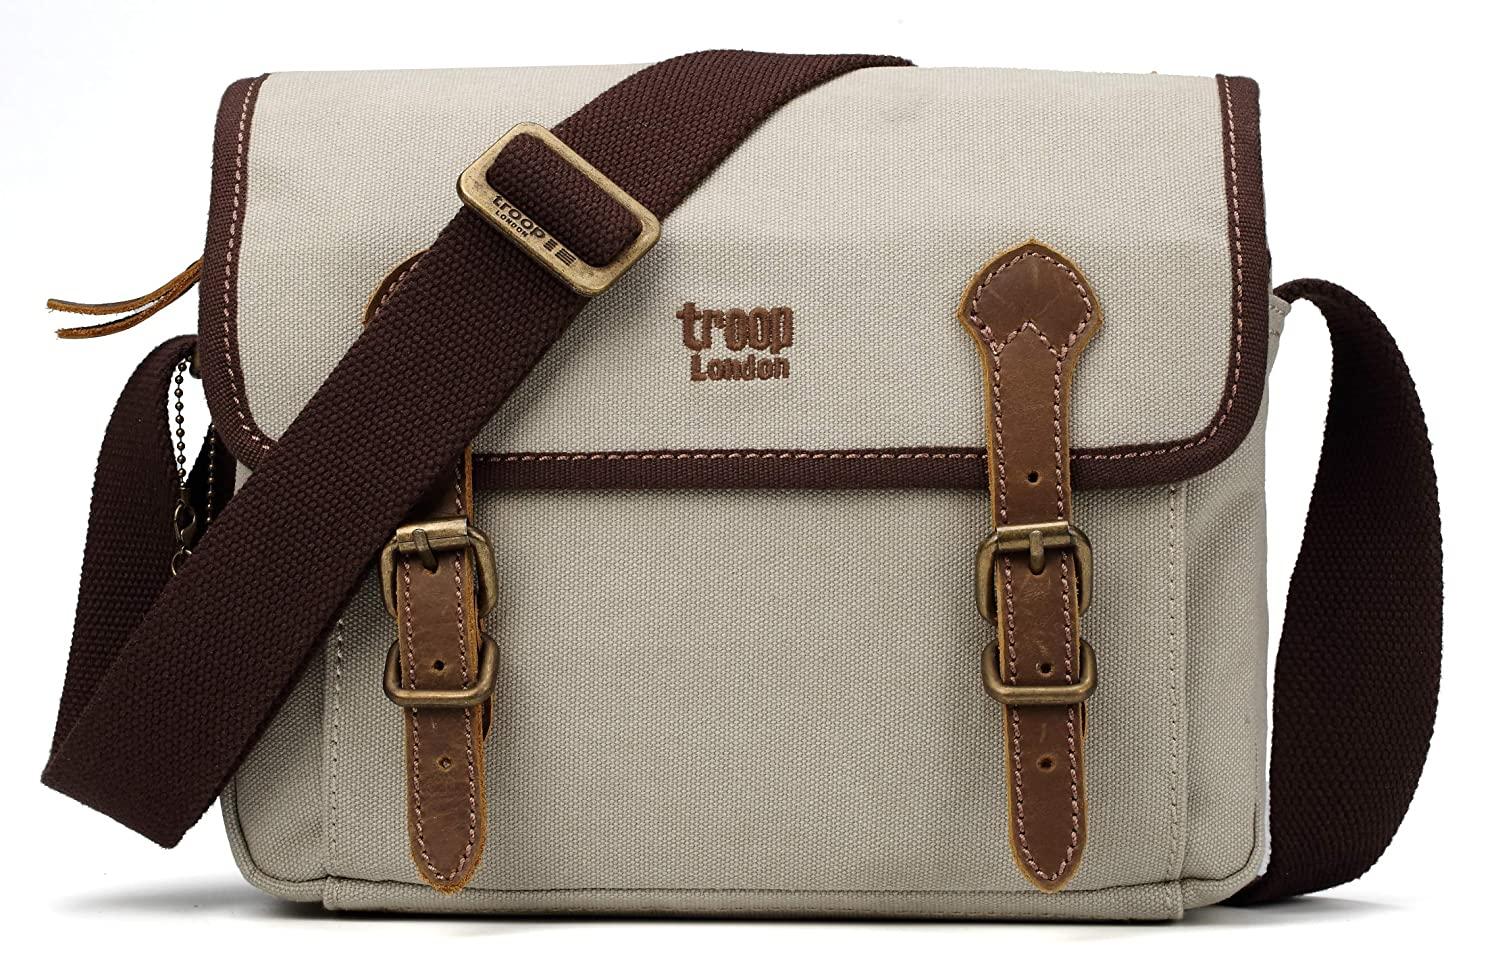 Troop London Canvas Classic Small Messenger Across Body Shoulder Bag TRP0412